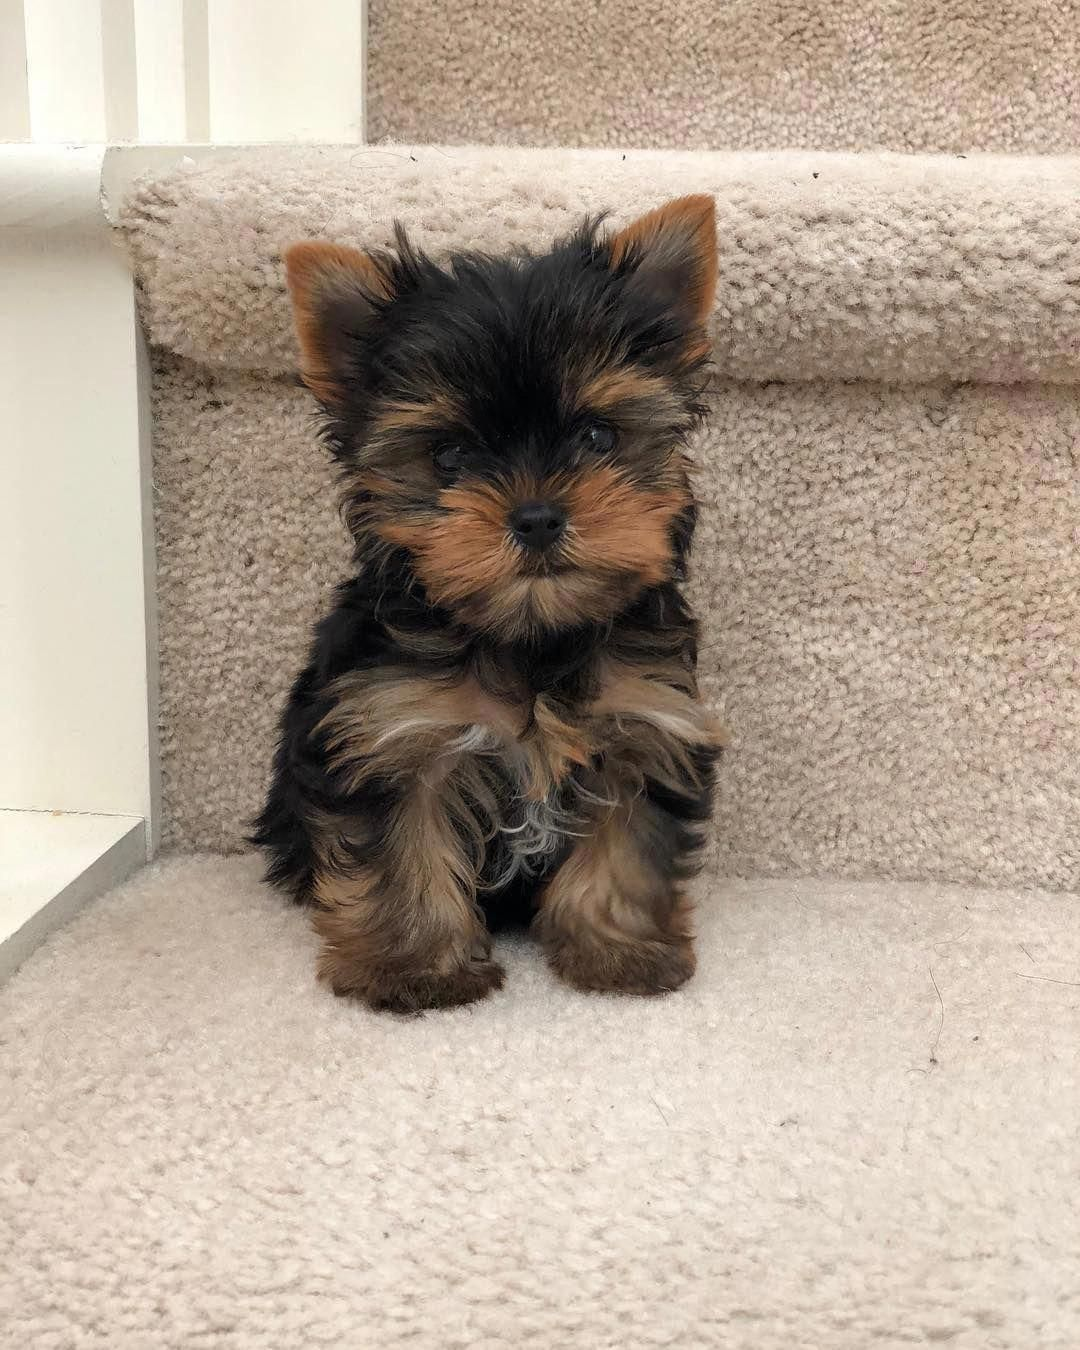 Yorkshire Terrier Energetic And Affectionate Yorkie Puppy Teacup Yorkie Puppy Yorkshire Terrier Dog